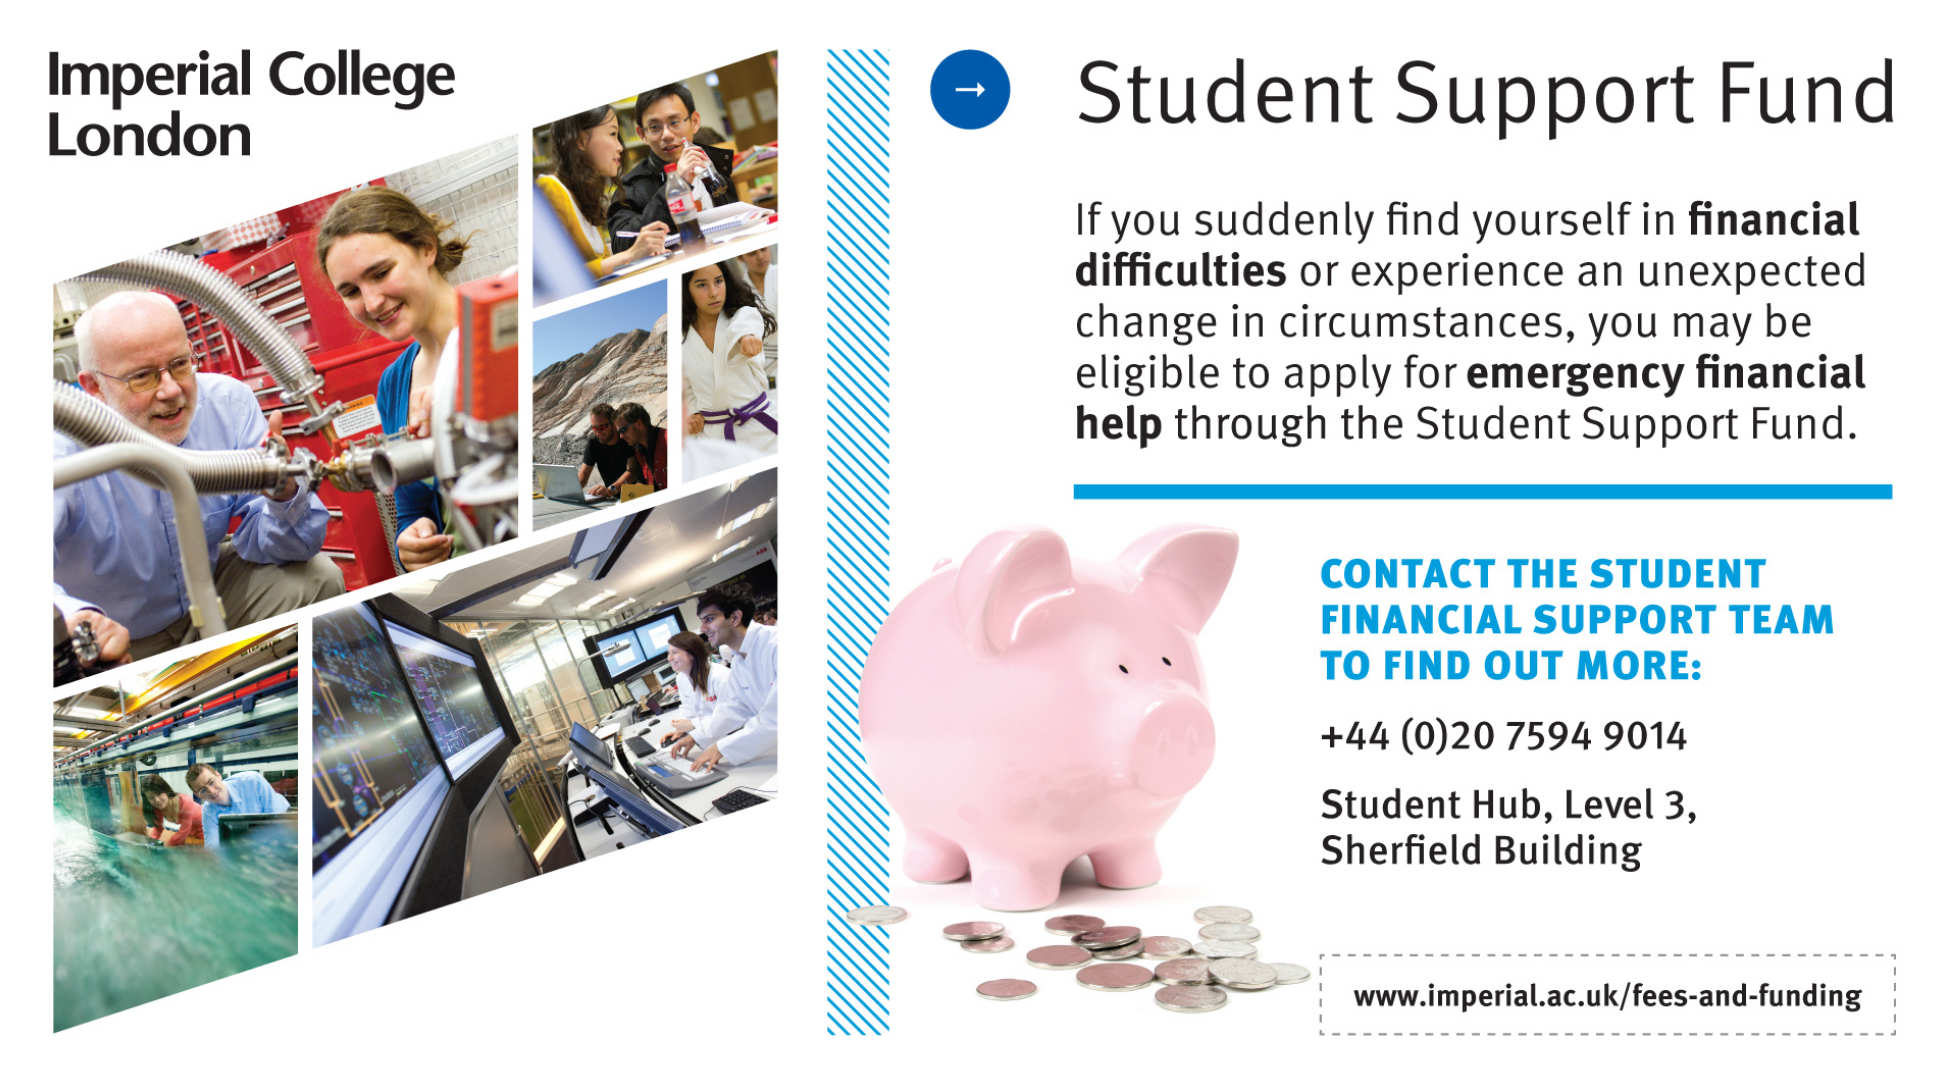 If you suddenly find yourself in financial difficulties or experience an unexpected change in circumstances, you may be eligible to apply for emergency financial help through the Student Support fund.